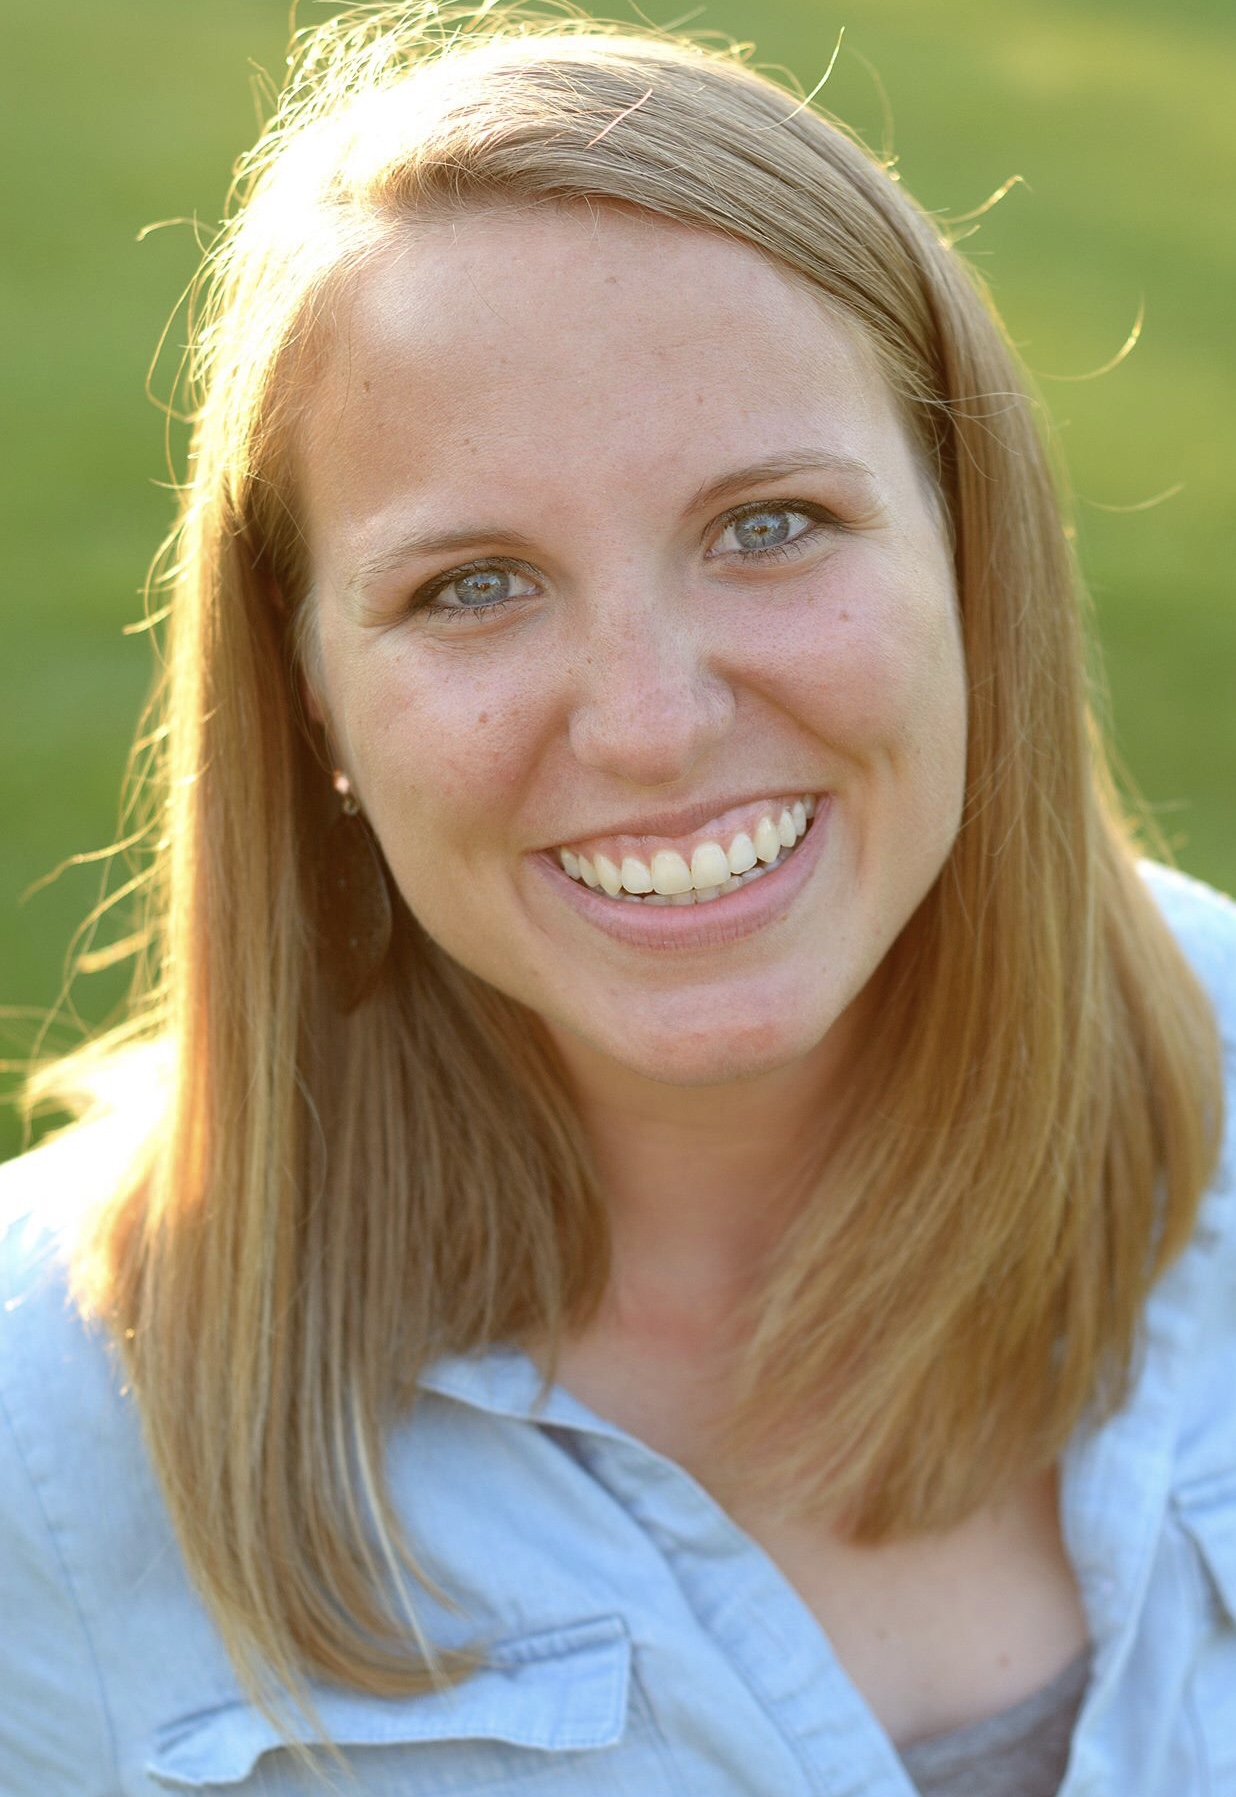 - Marcia Post is a wife of 6 years to an incredible man of God and a mother of 6 months to a sweet (and strong-willed) 2 year old. She graduated with her Masters degree in Marriage and Family Counseling from Asbury Theological Seminary in 2017. She has worked with the missions organization, Cru, for 6 years where she disciples college students in Louisville and makes disciples of all nations through the power of the Spirit.